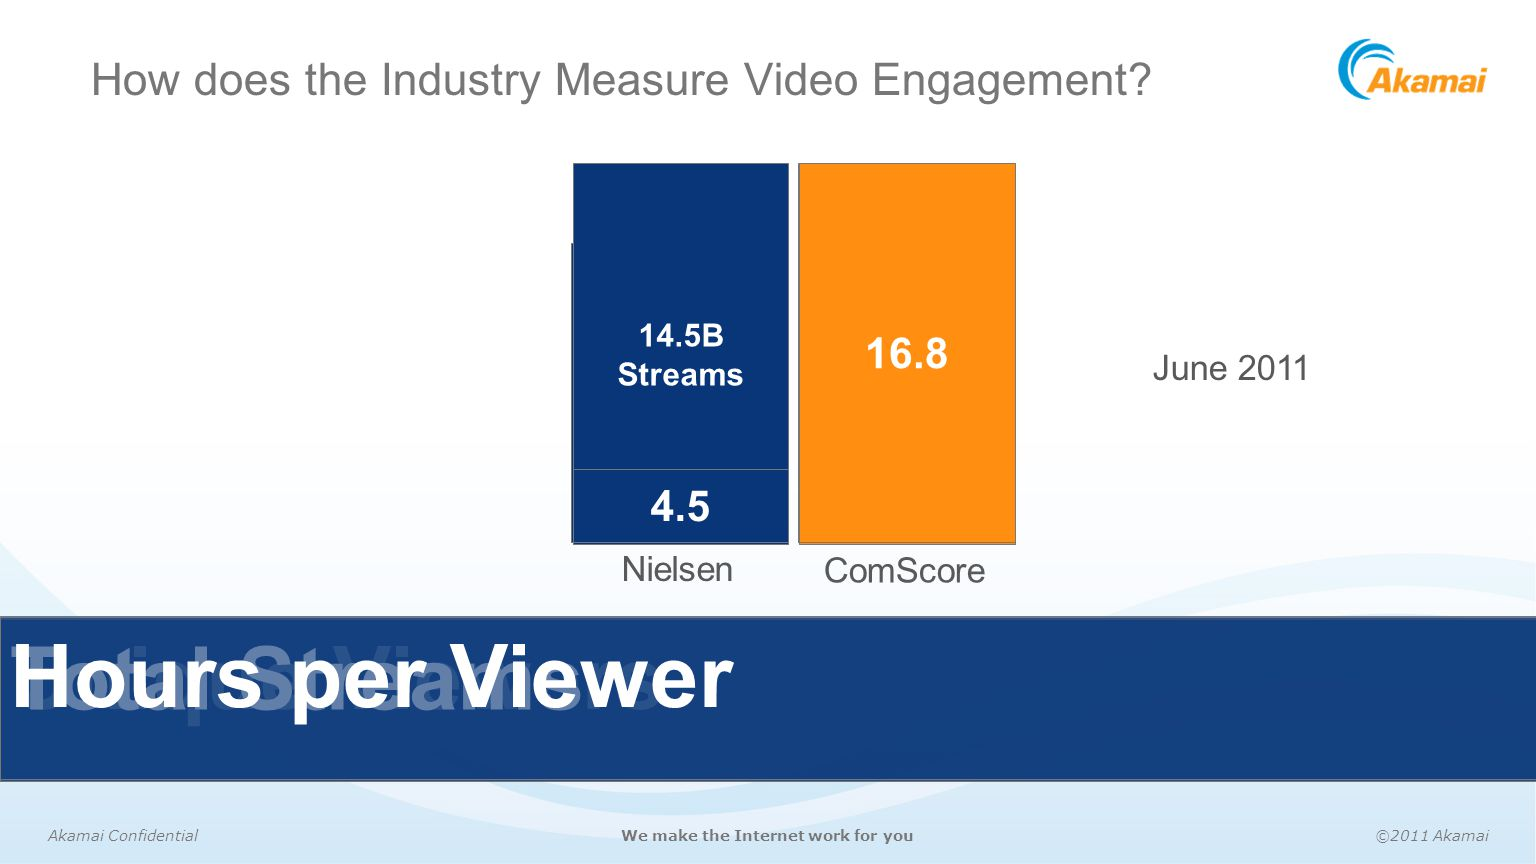 Akamai Confidential©2011 AkamaiWe make the Internet work for you How does the Industry Measure Video Engagement? 142.6M Unique Viewers 178M June 2011